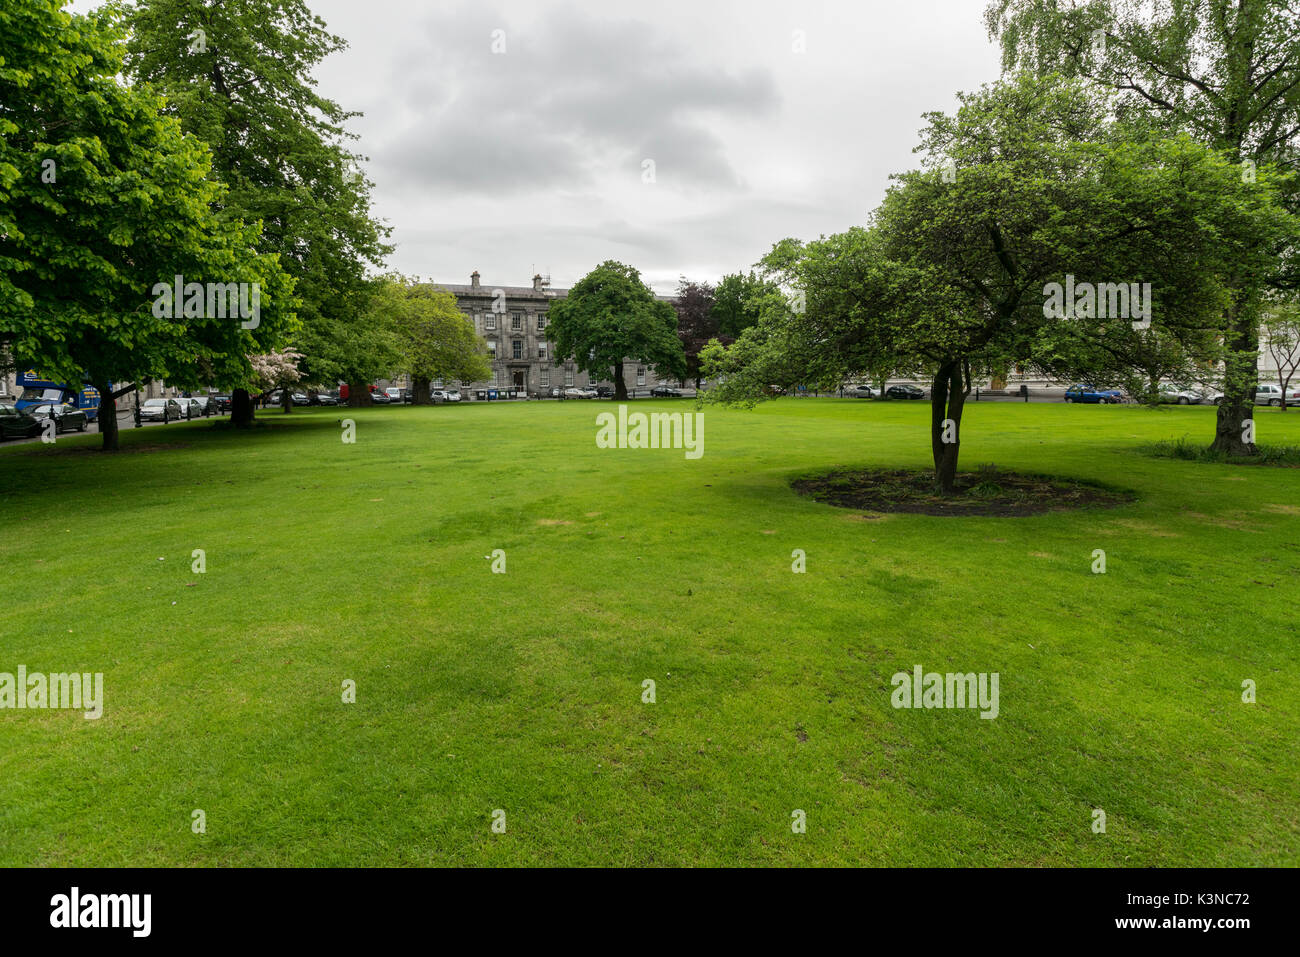 The garden at the Trinity College. Dublin, Leinster, Ireland, Europe. - Stock Image